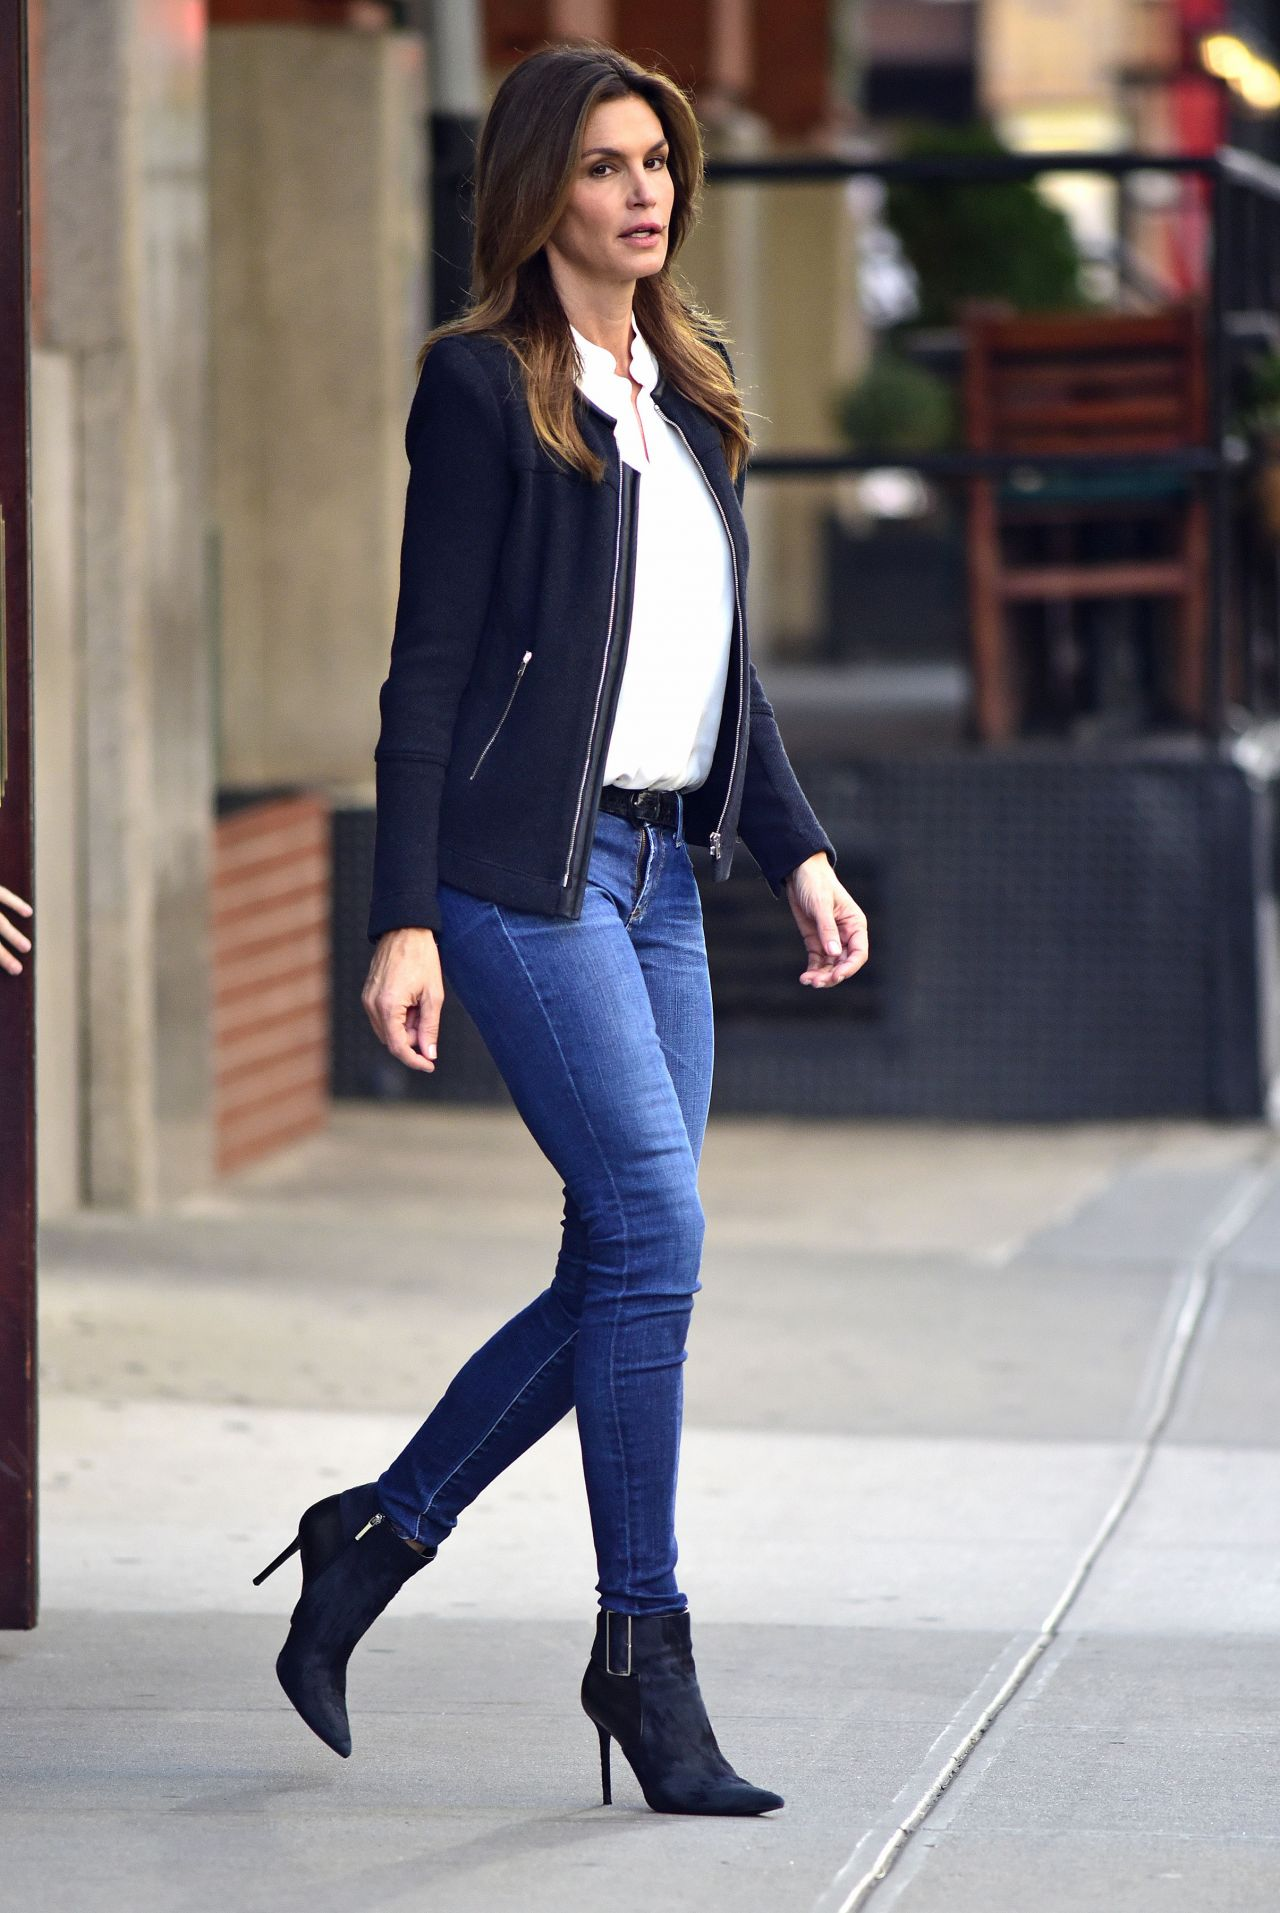 cindy crawford in tight jeans leaving her hotel in new